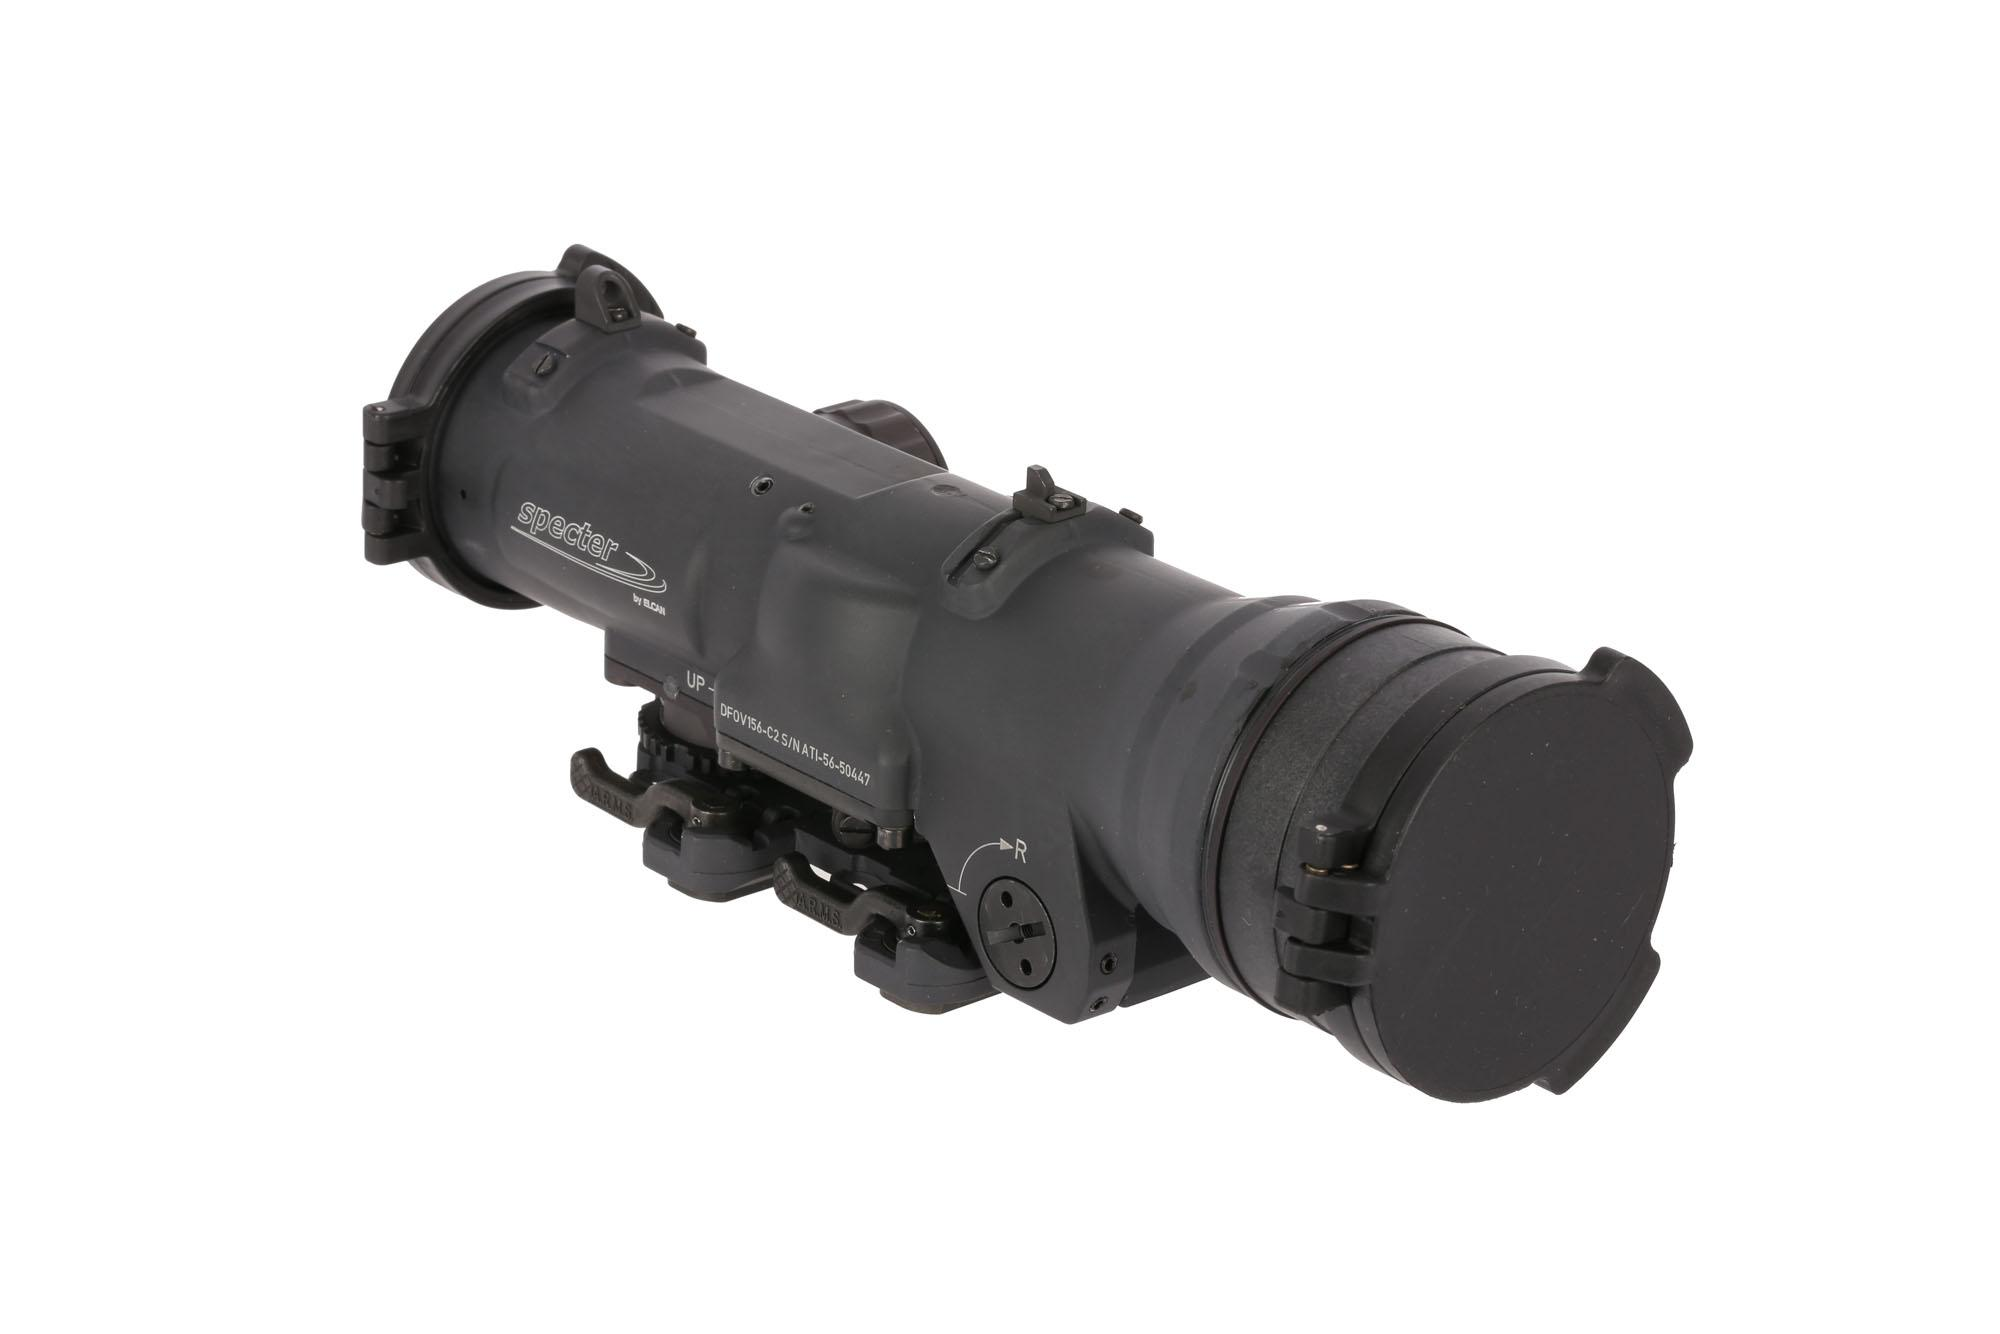 ELCAN SpecterDR Dual Role 1.5x / 6x Optical Sight - 7.62 NATO - Black